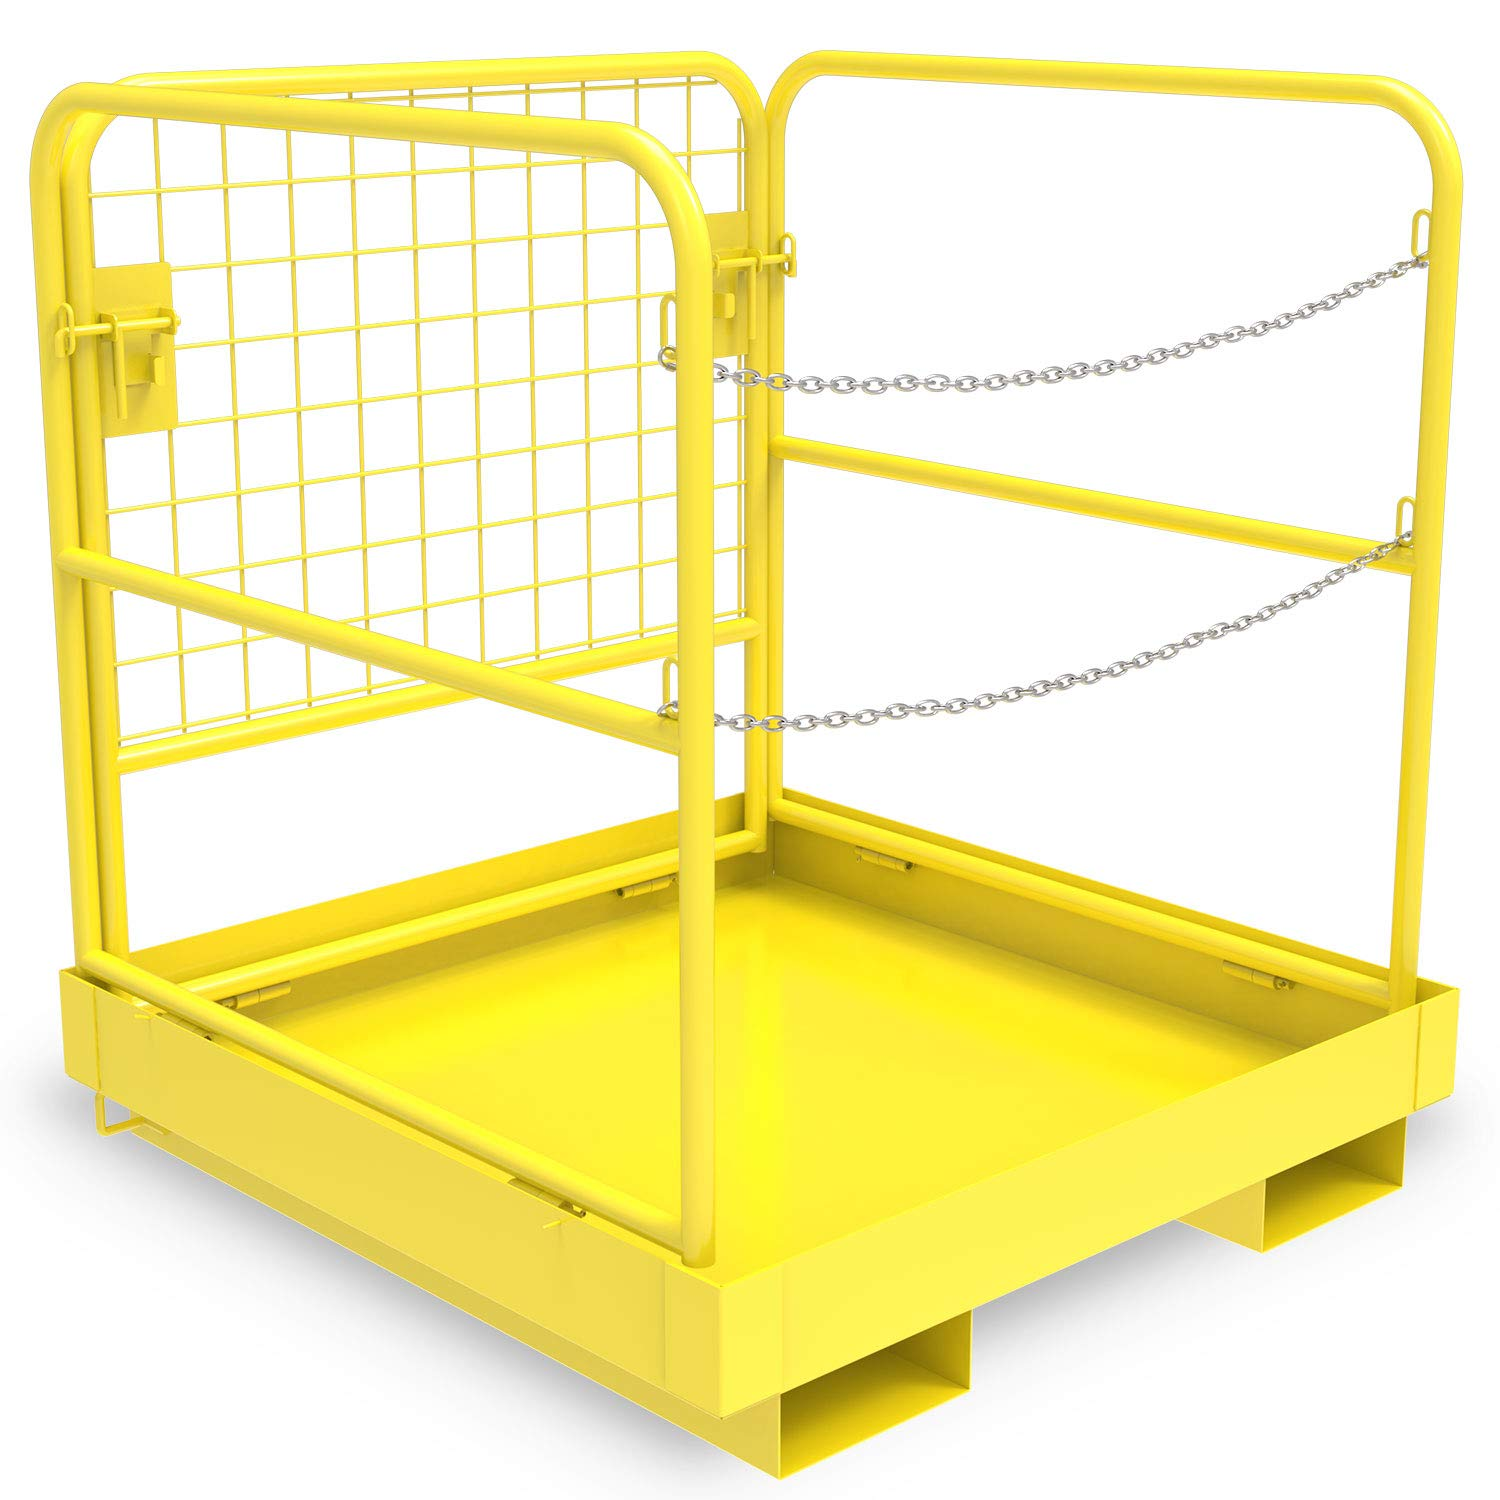 YINTATECH Forklift Work Platform Safety Cage Collapsible Heavy Duty Steel Construction Lift Basket Aerial Rails 36x36 inches 1105lbs Capacity